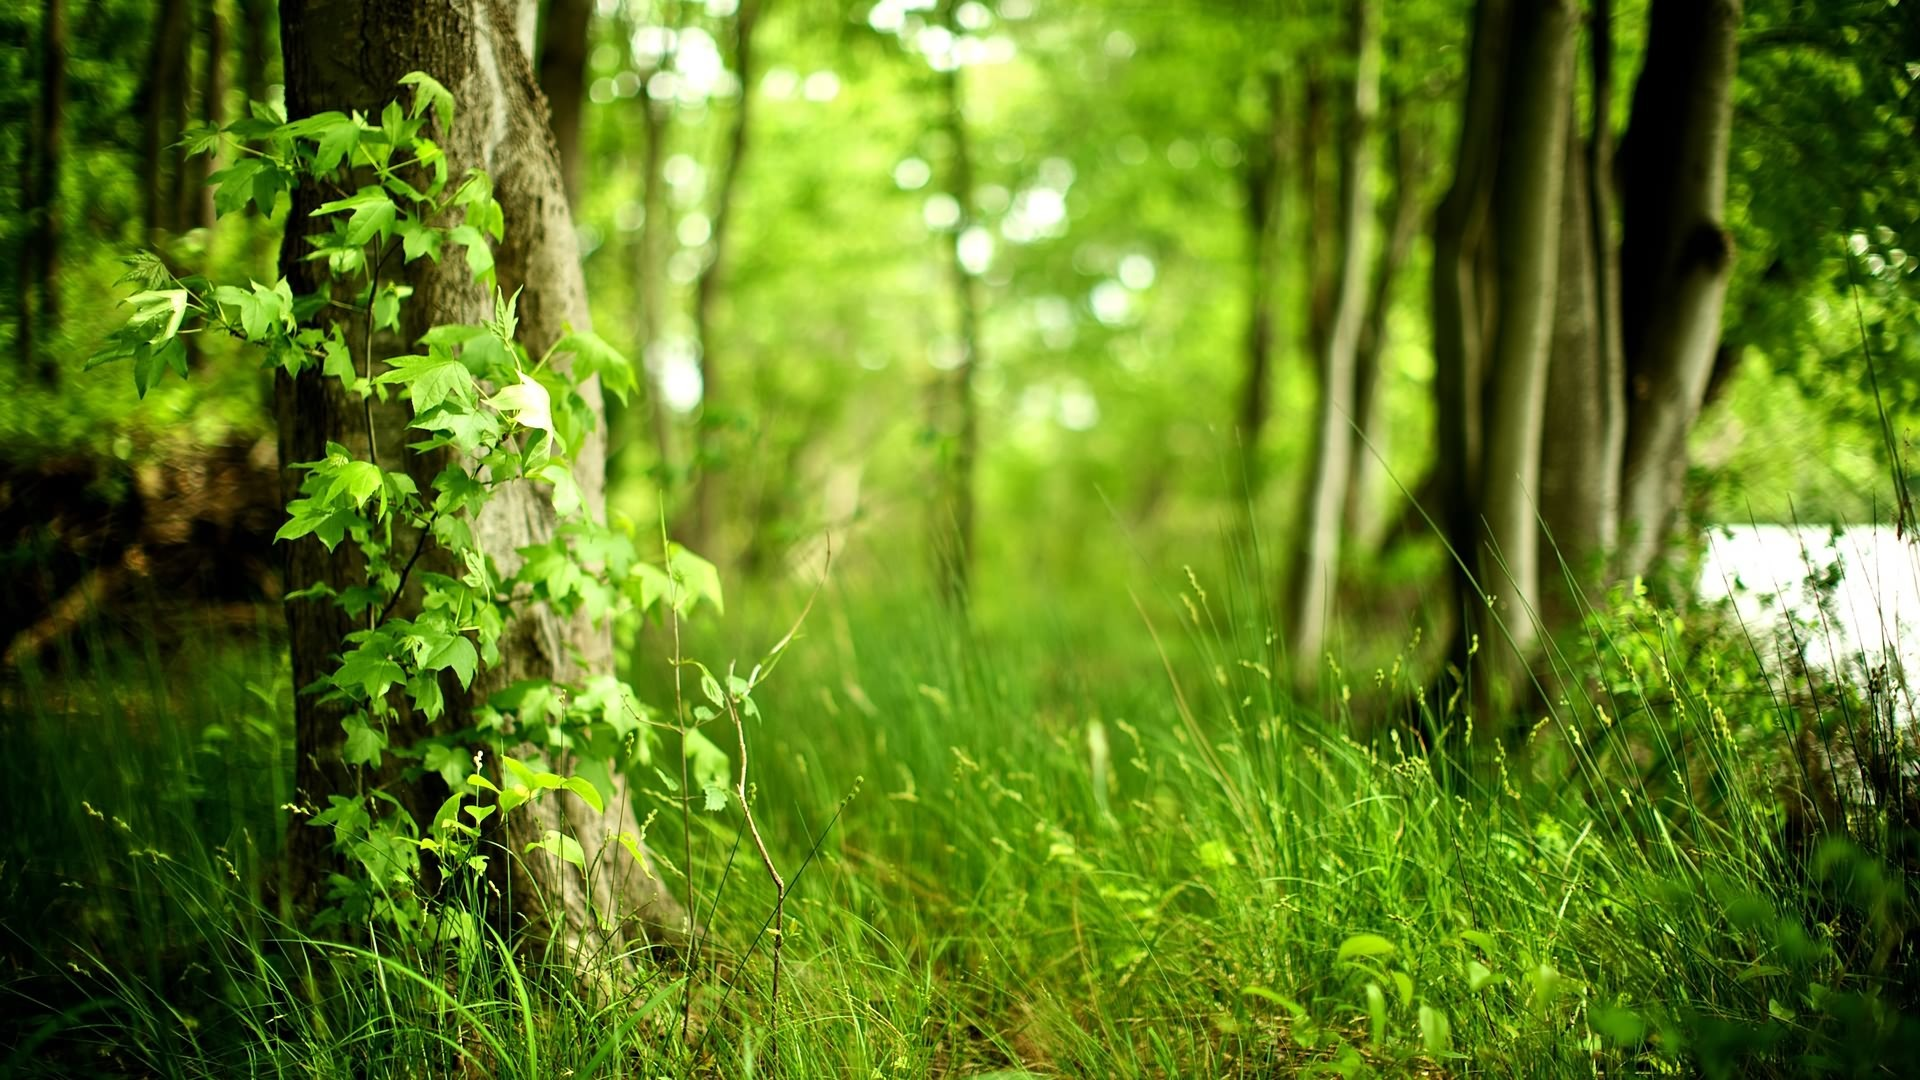 forest green background (47+ images)